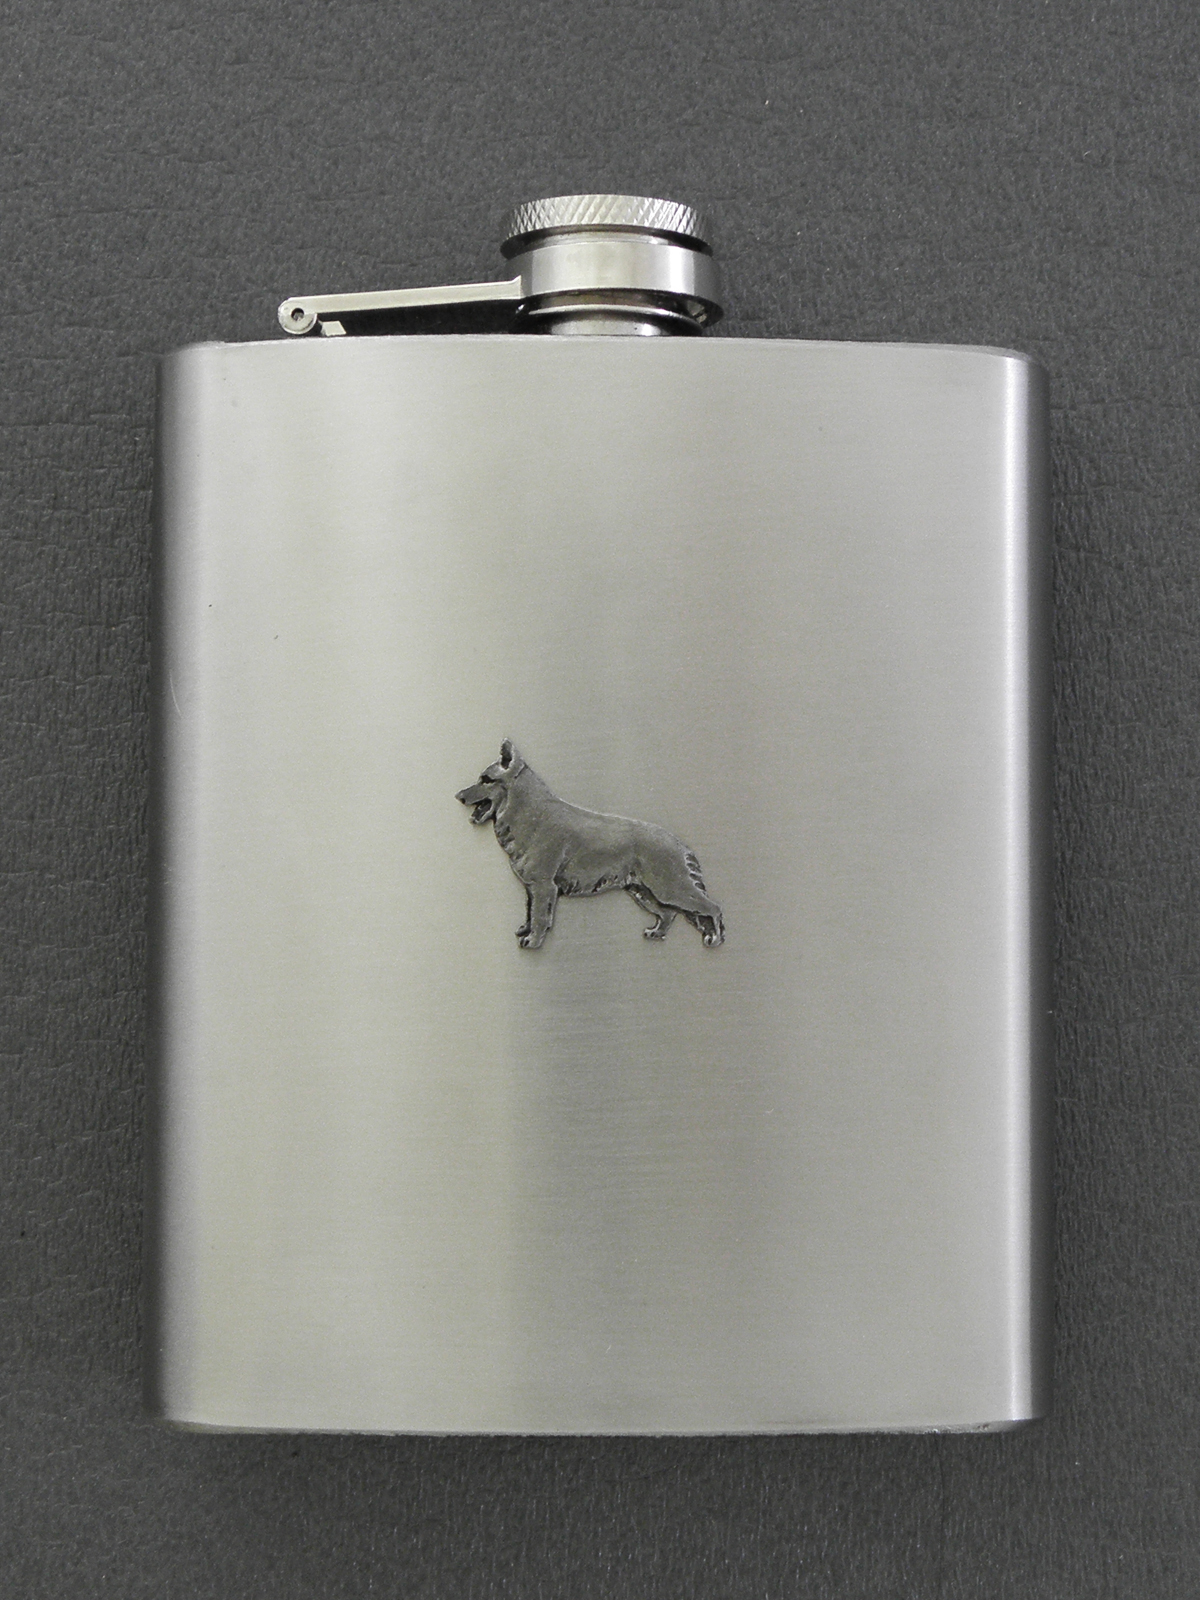 German Shepherd - Hip Flask Figure